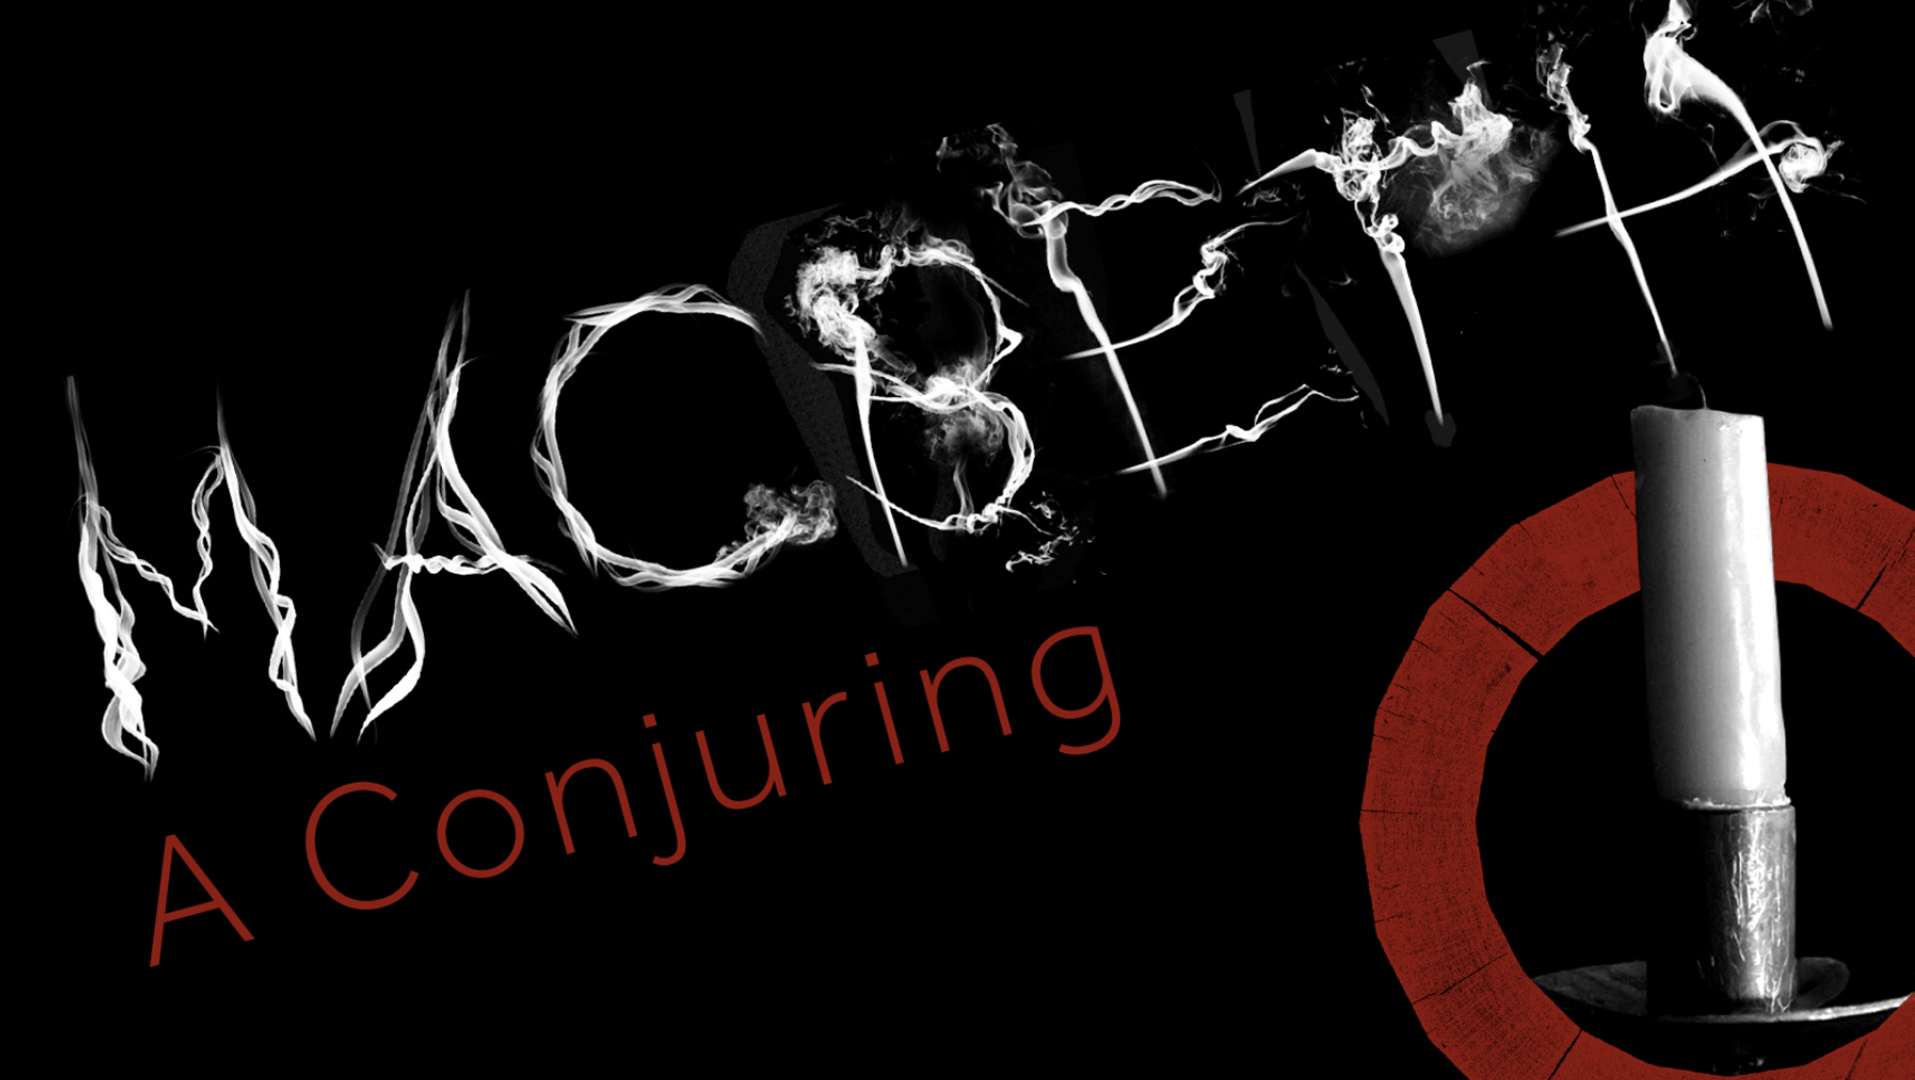 The words 'Macbeth: A Conjuring' next to a candle that has blown out